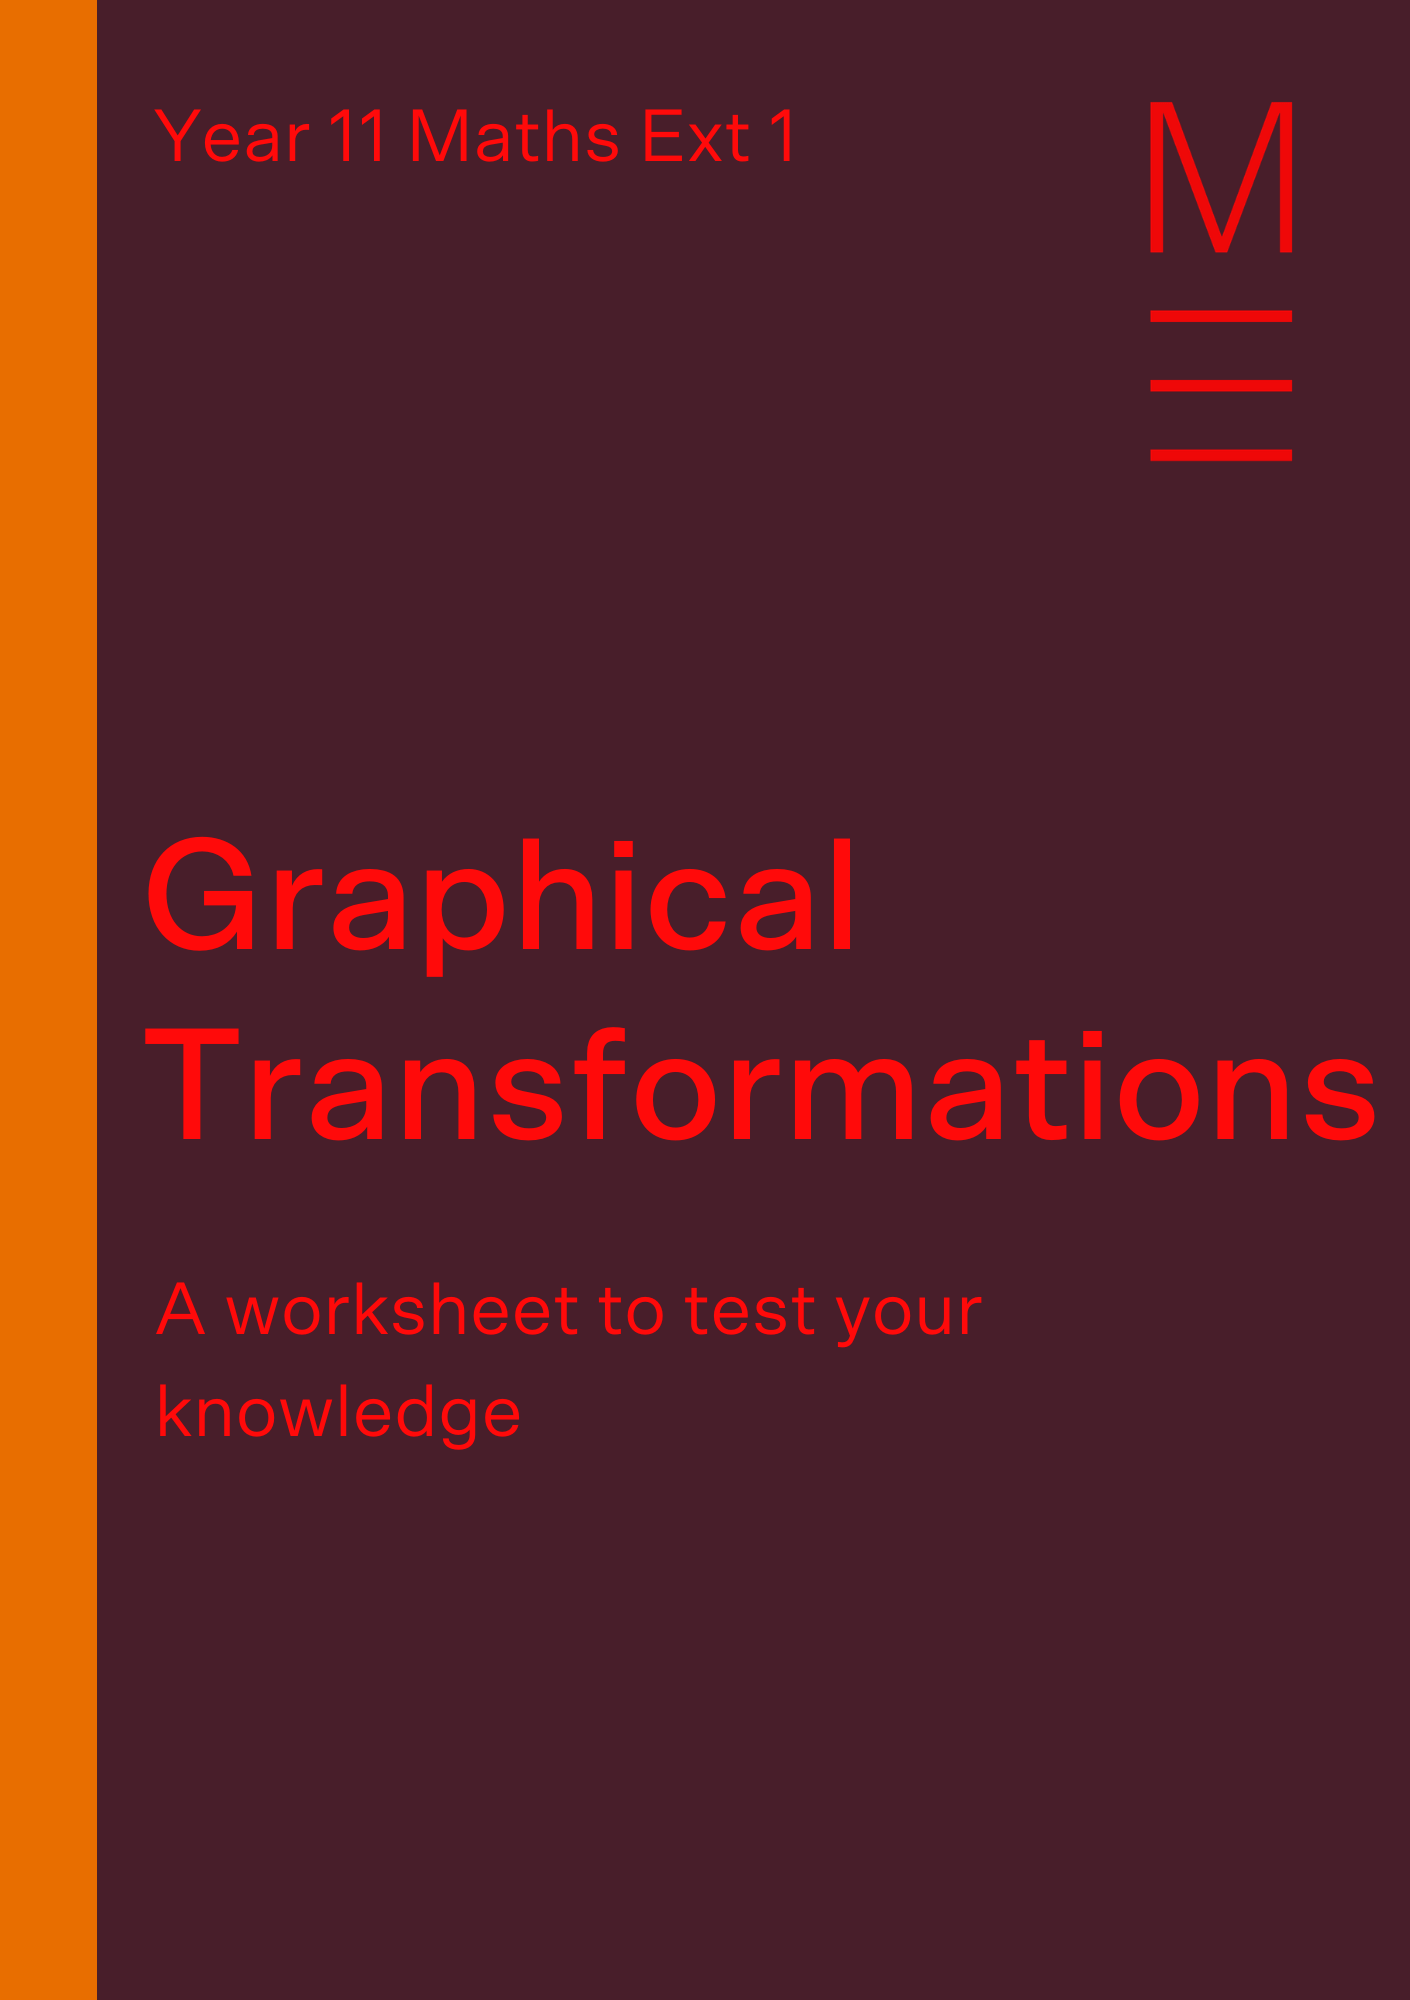 Part 4 Graphical Transformations